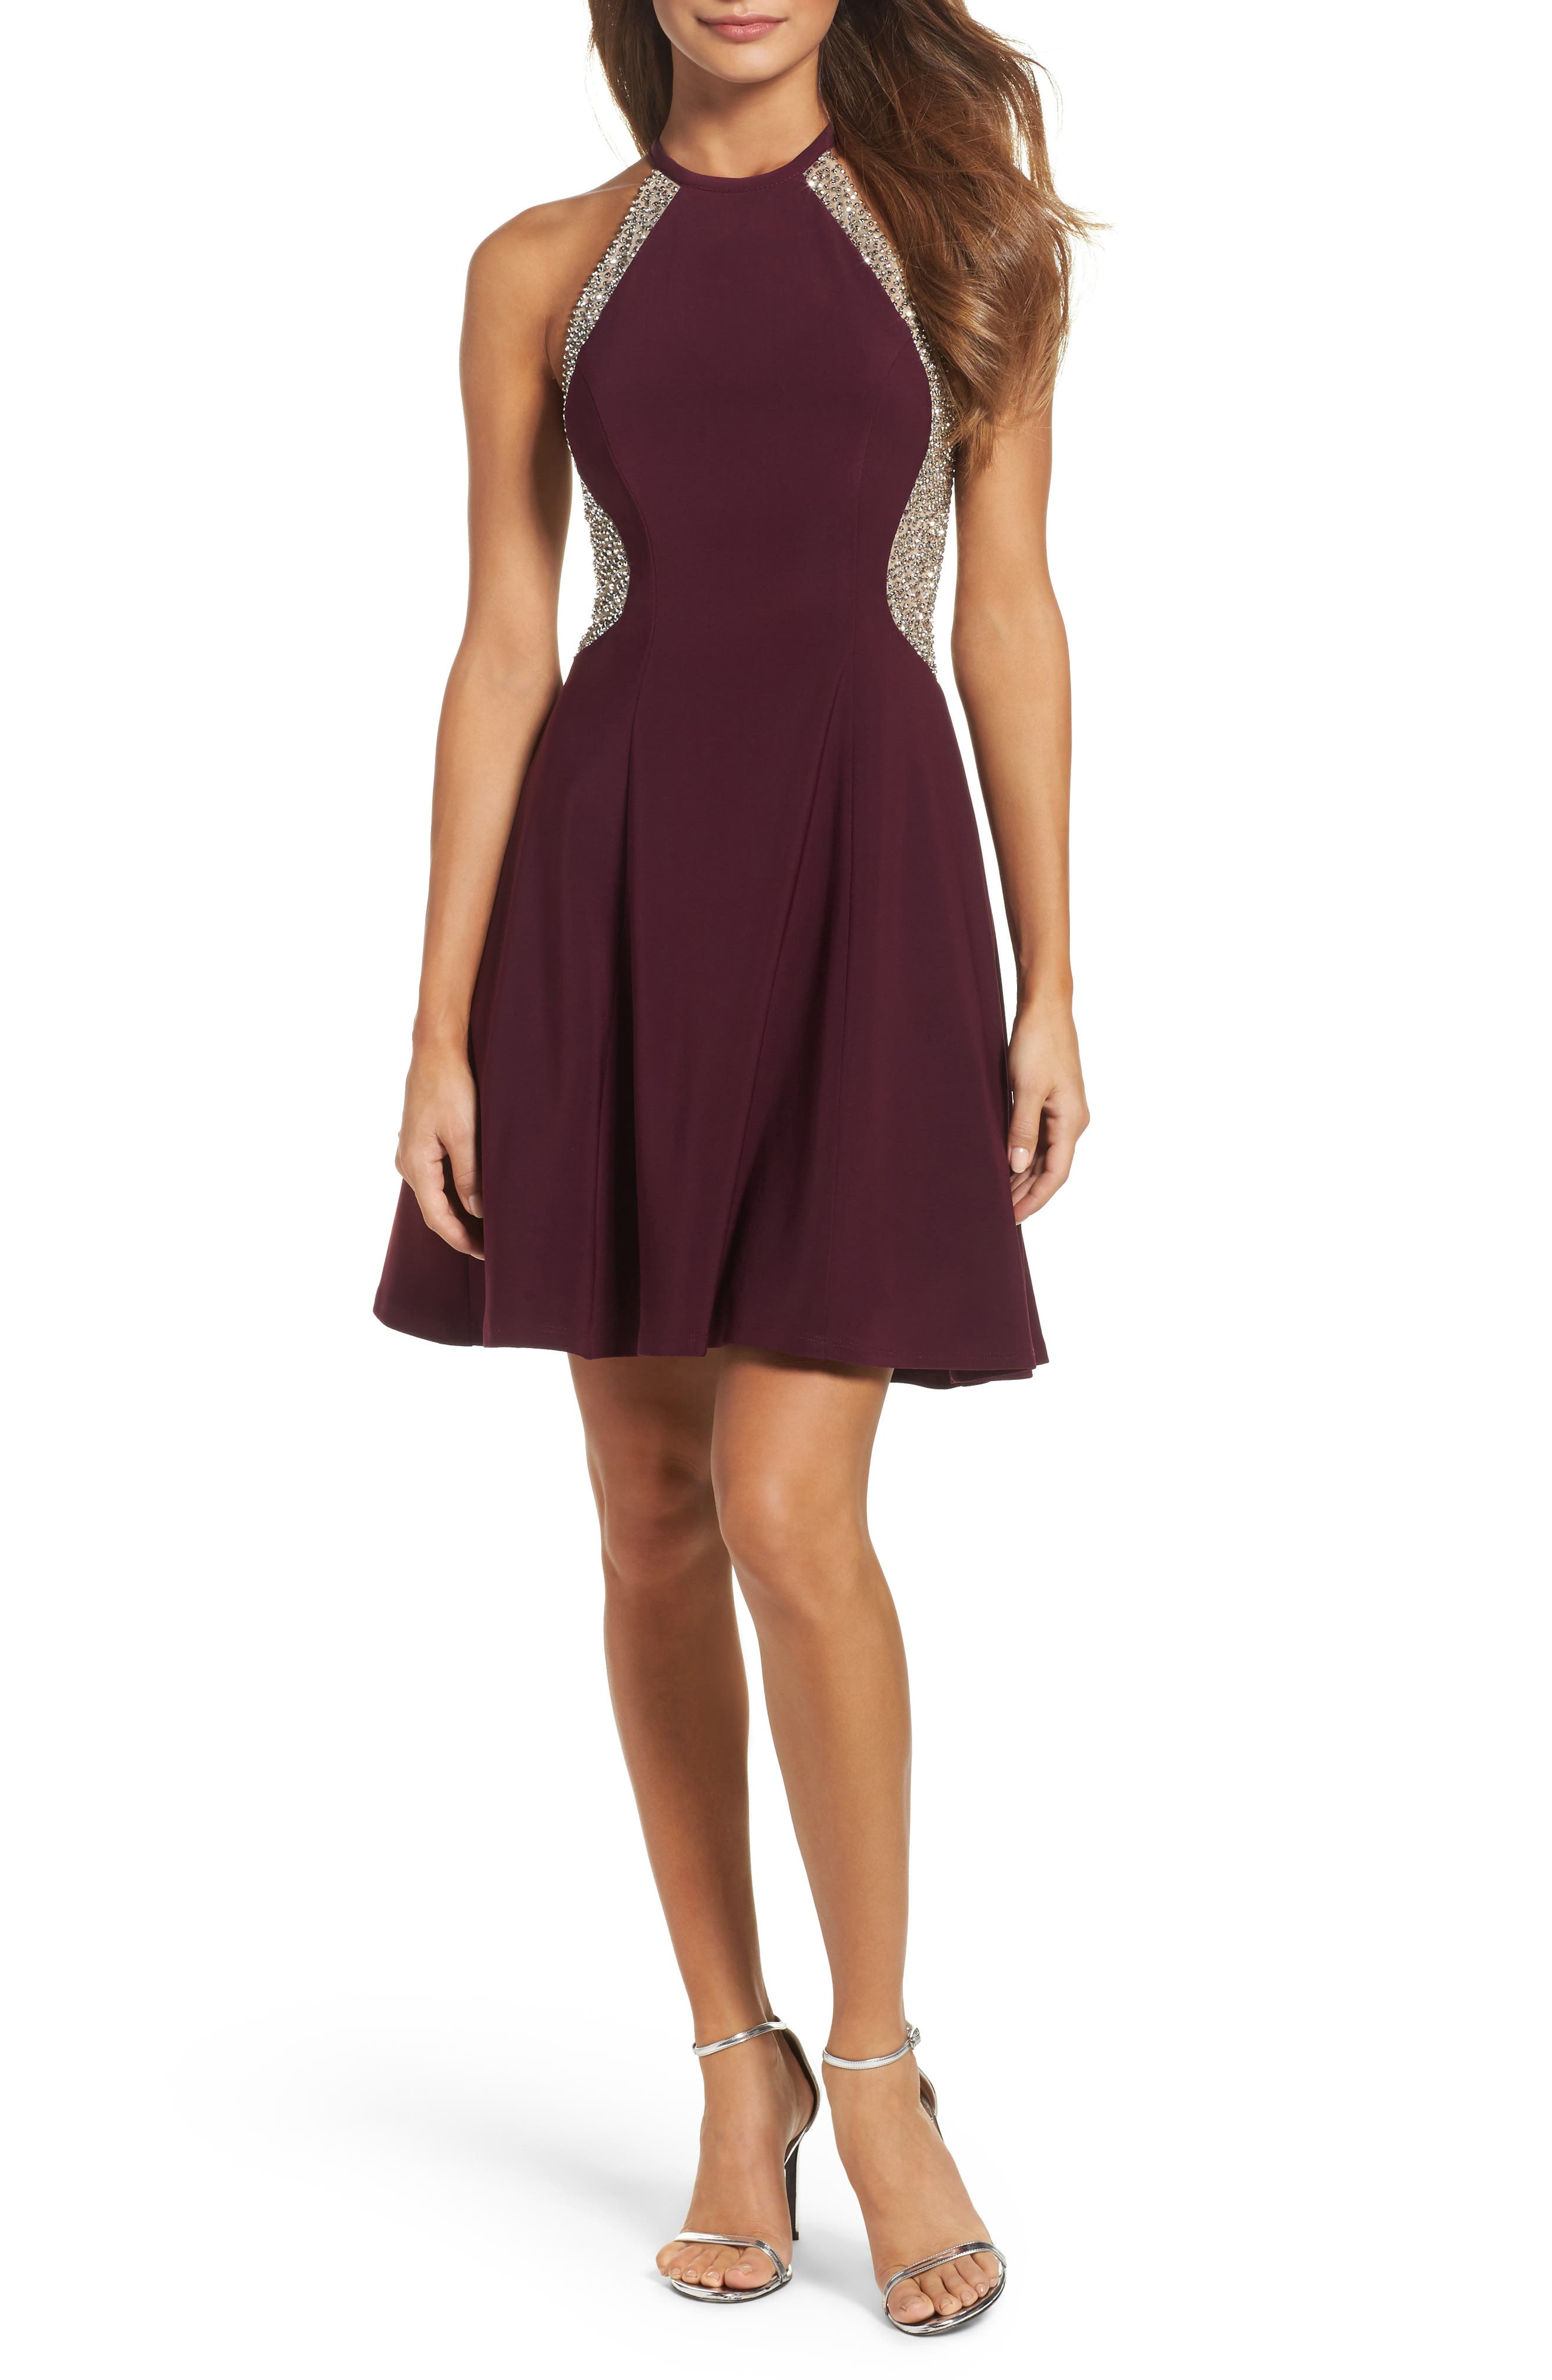 Beaded Jersey Party Dress,                         Main,                         color, Wine/ Nude/ Silver